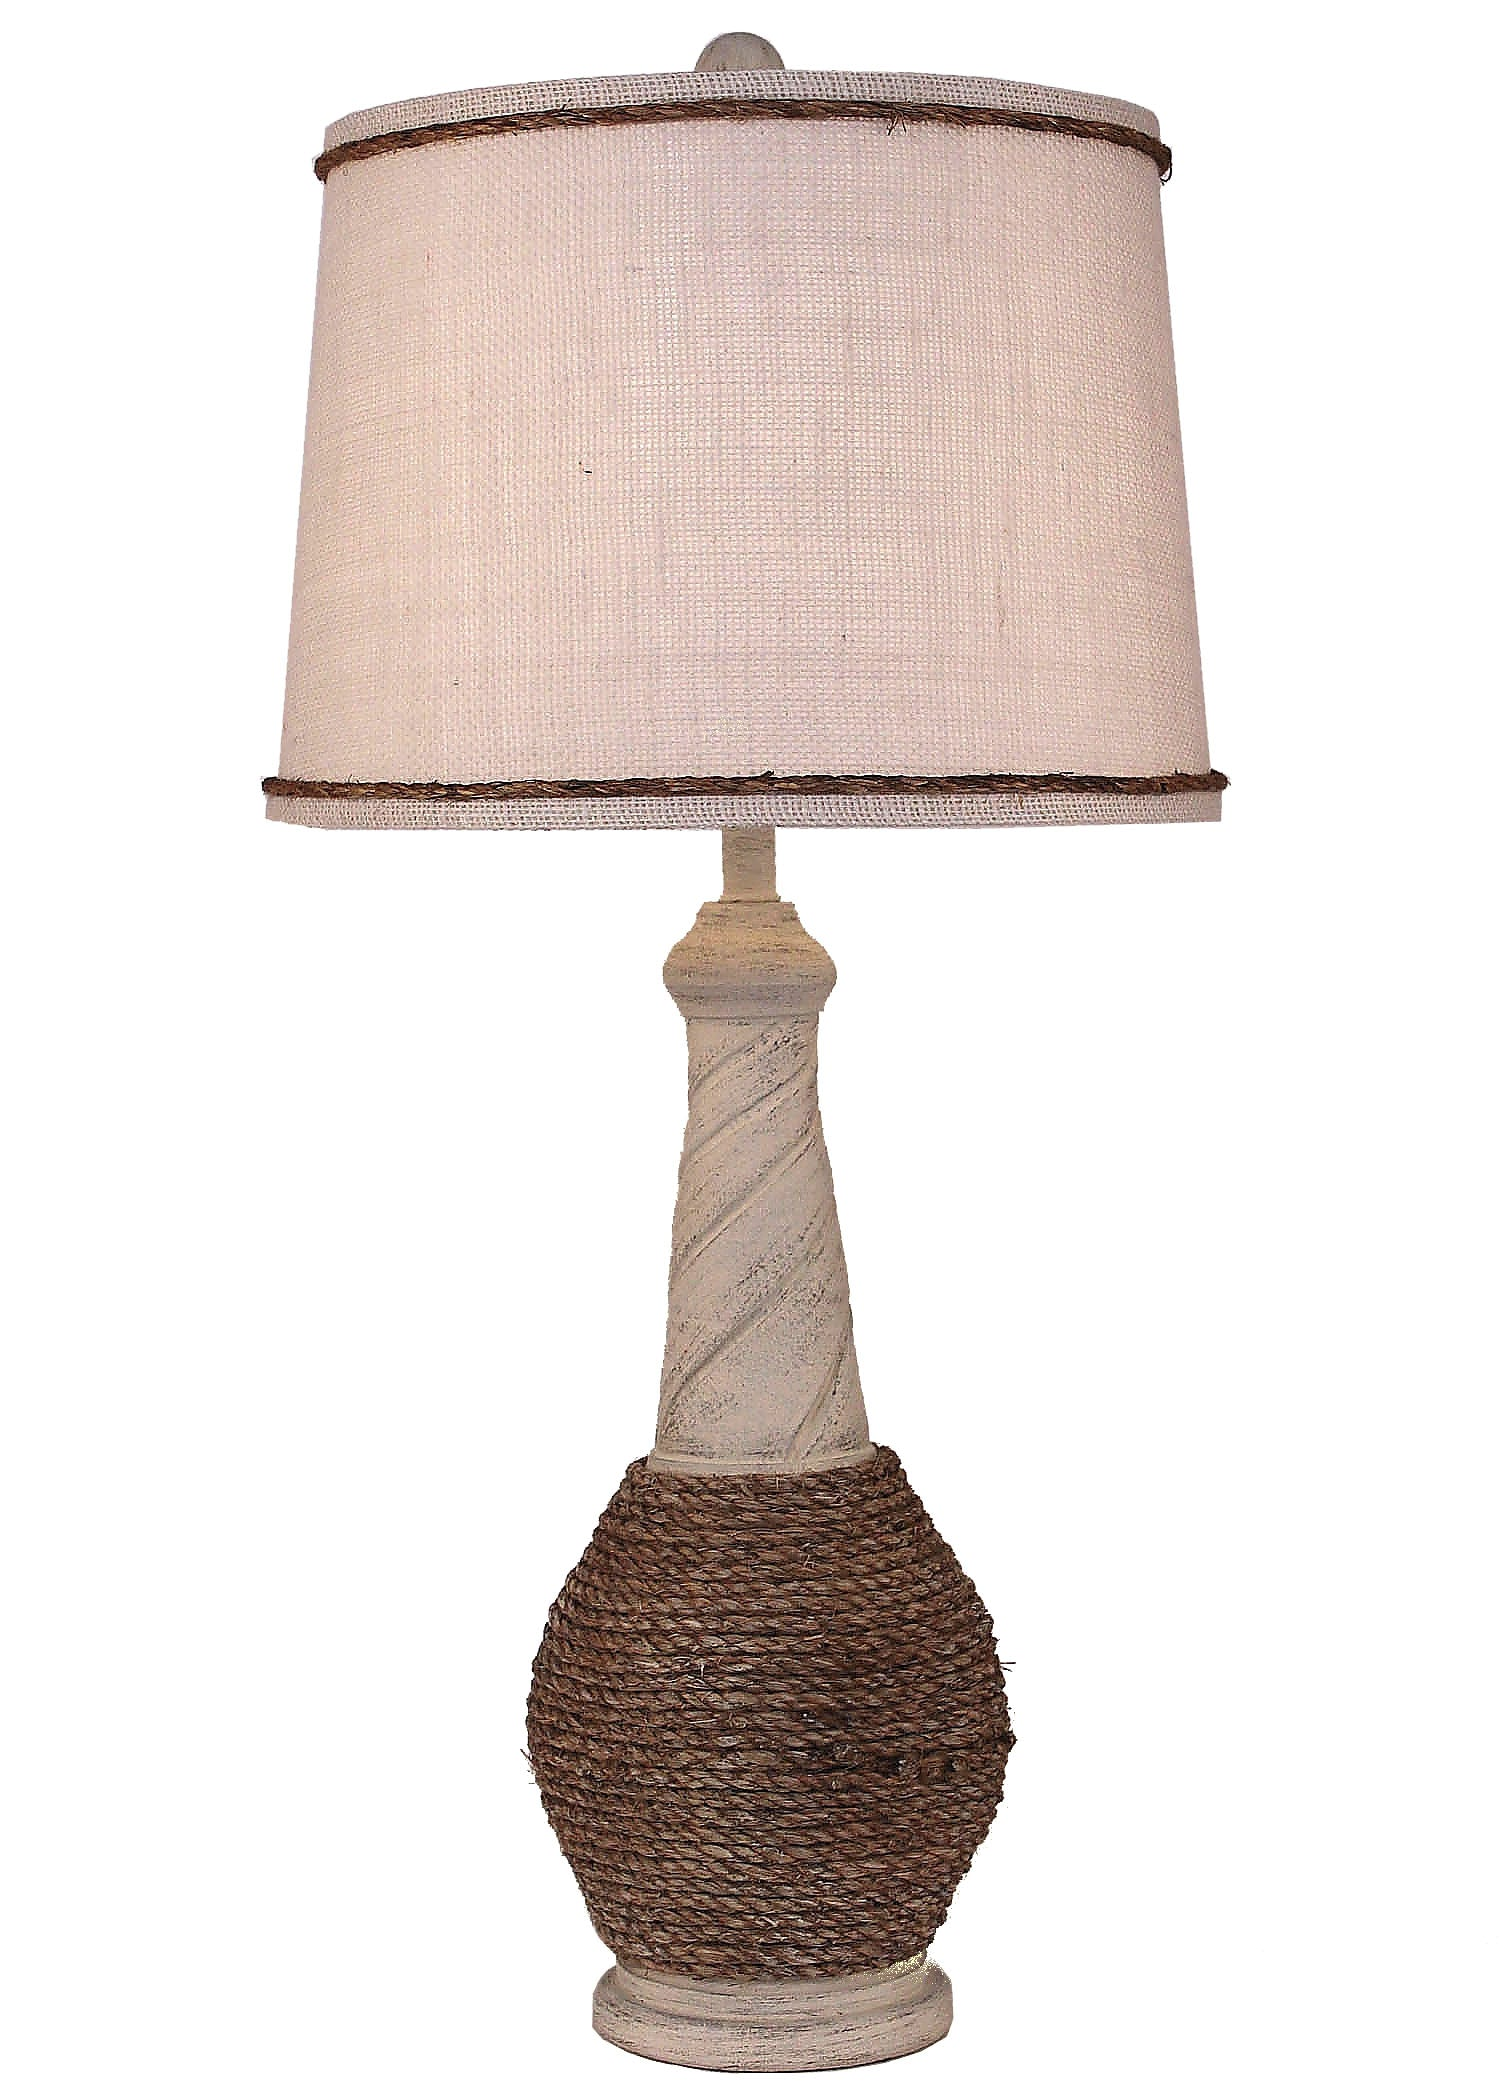 Cottage Rope and Twist Table Lamp - Coast Lamp Shop